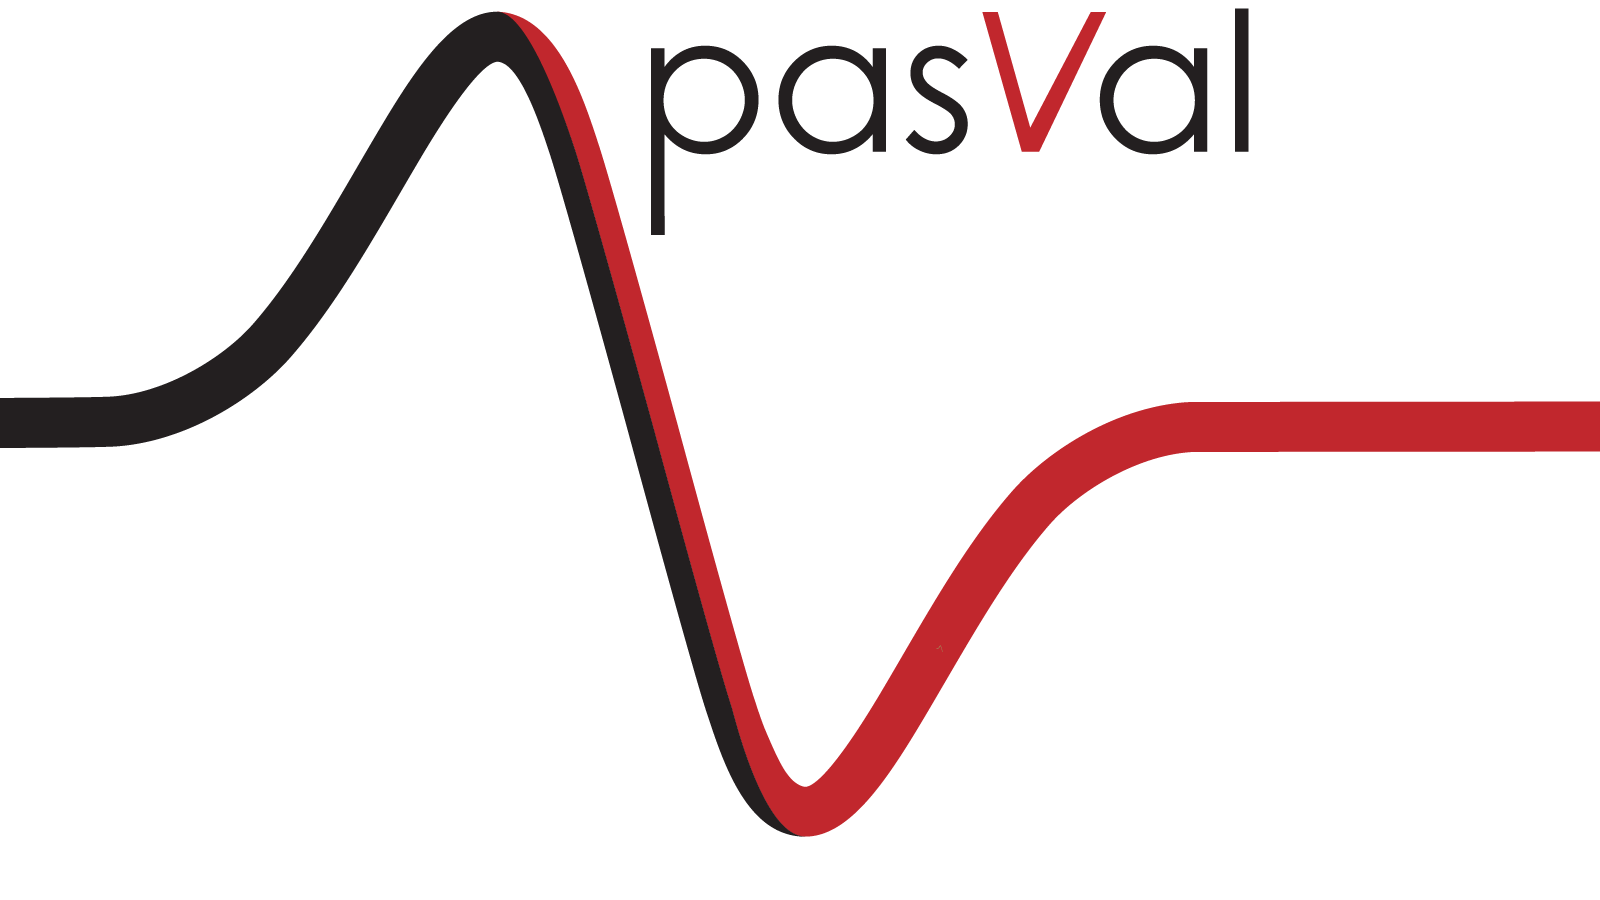 pasVal provides